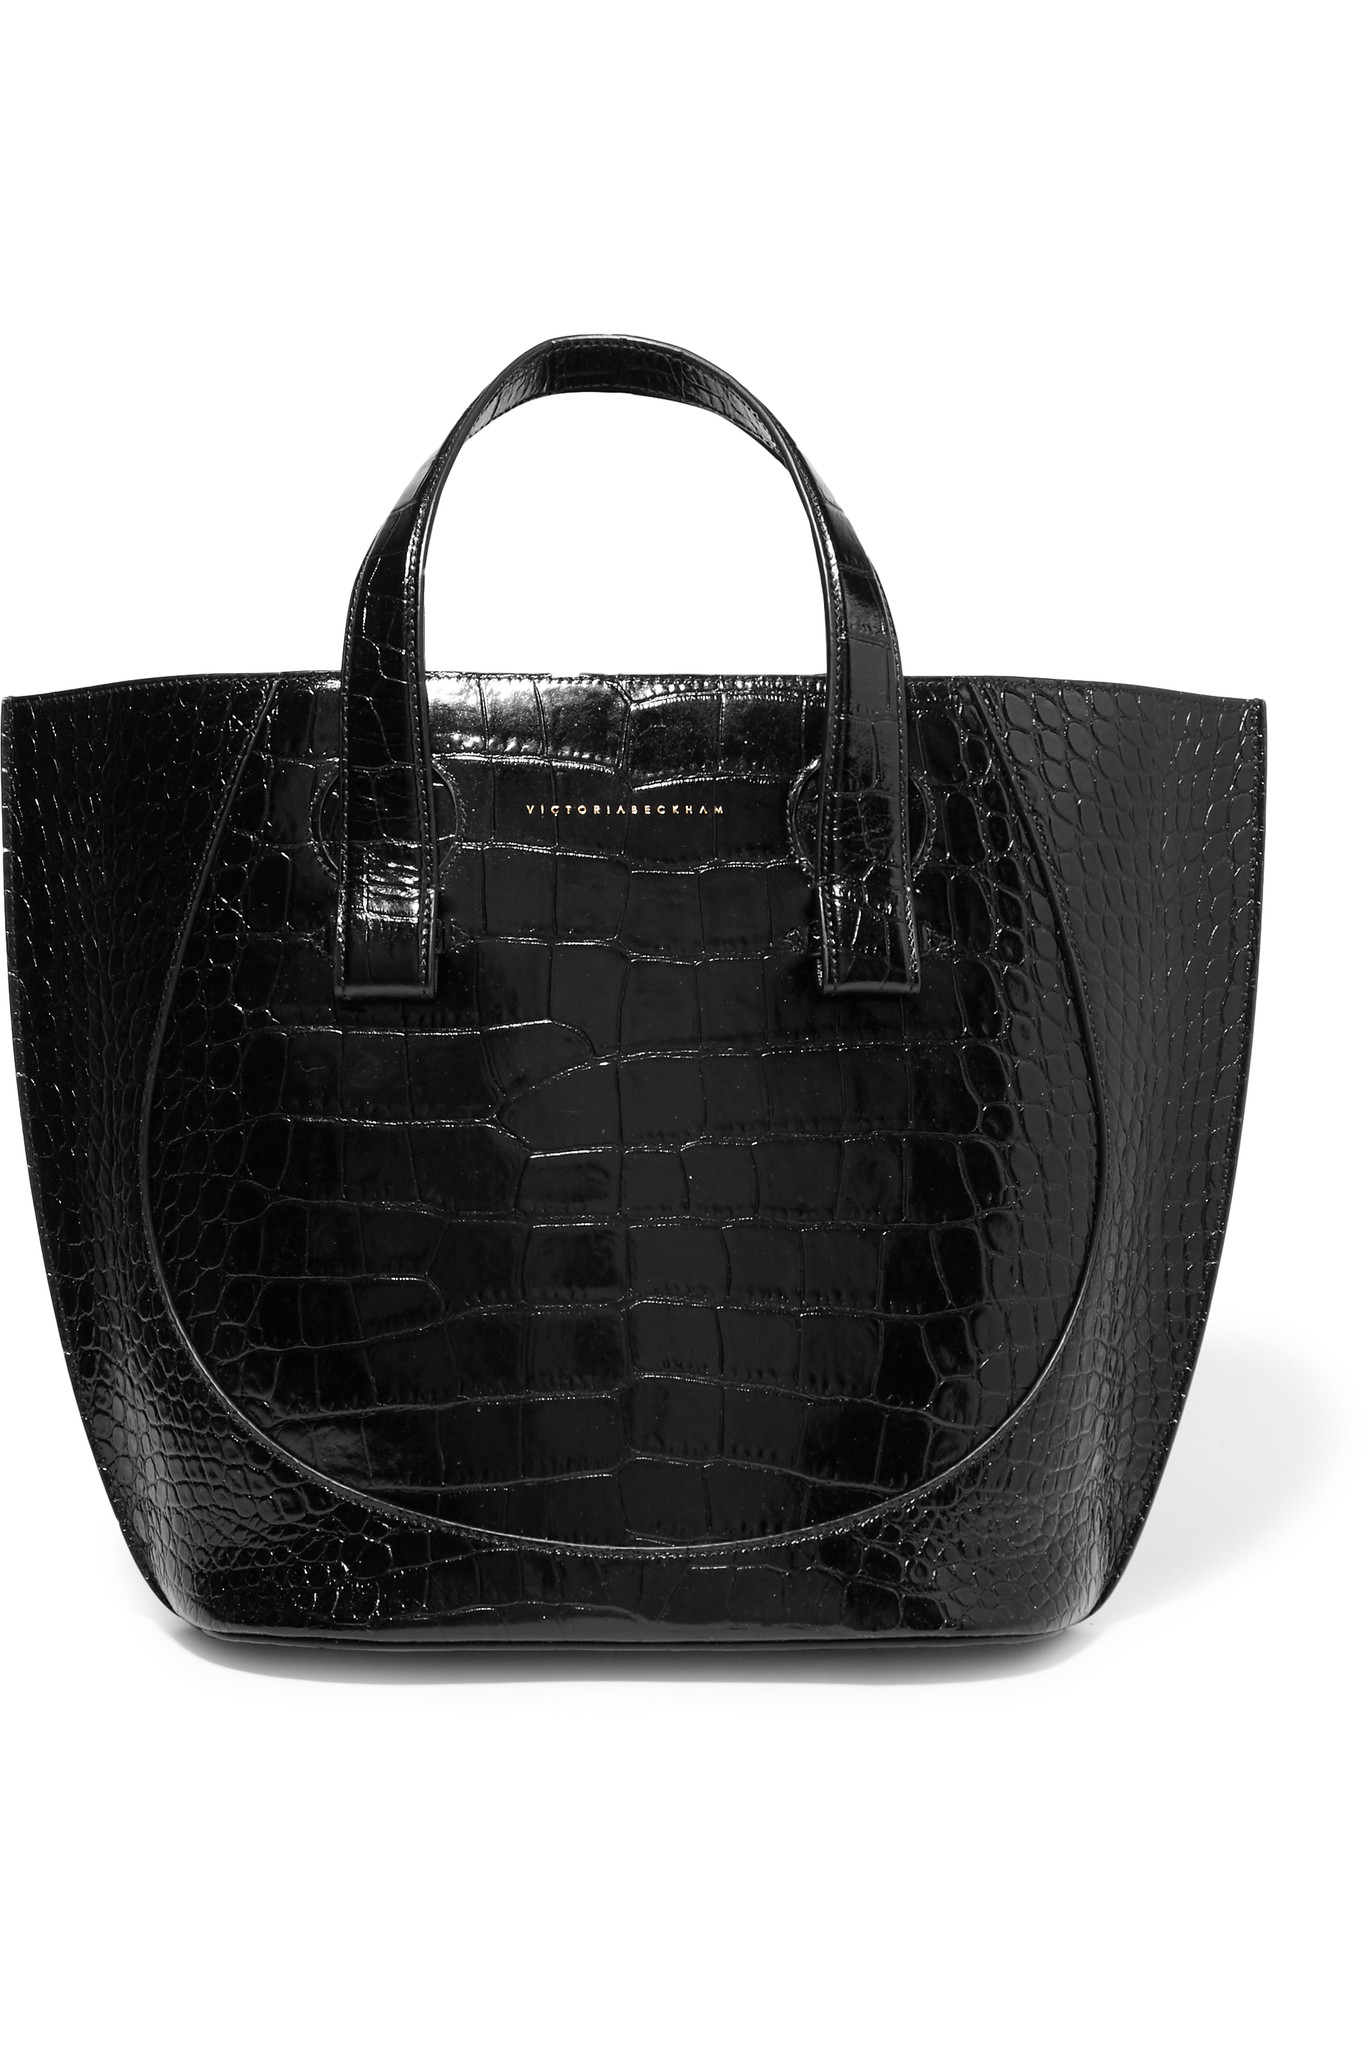 Lyst - Victoria Beckham Tulip Small Croc-effect Leather Tote in Black 48300d5b06c90